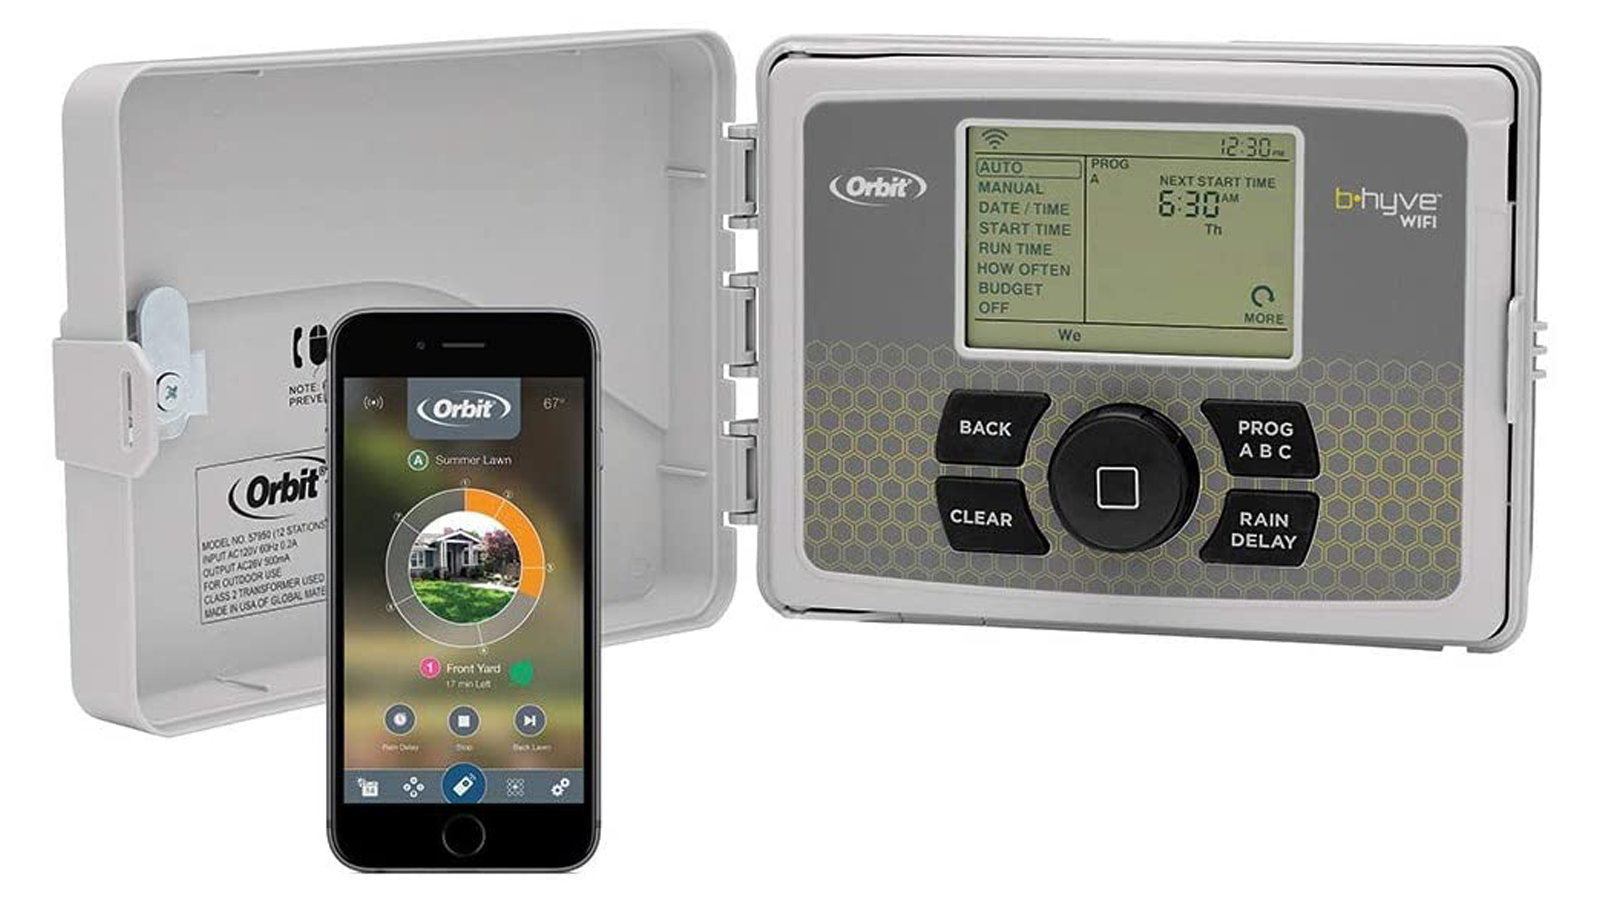 The Orbit B-hyve smart sprinkler controller and its companion app